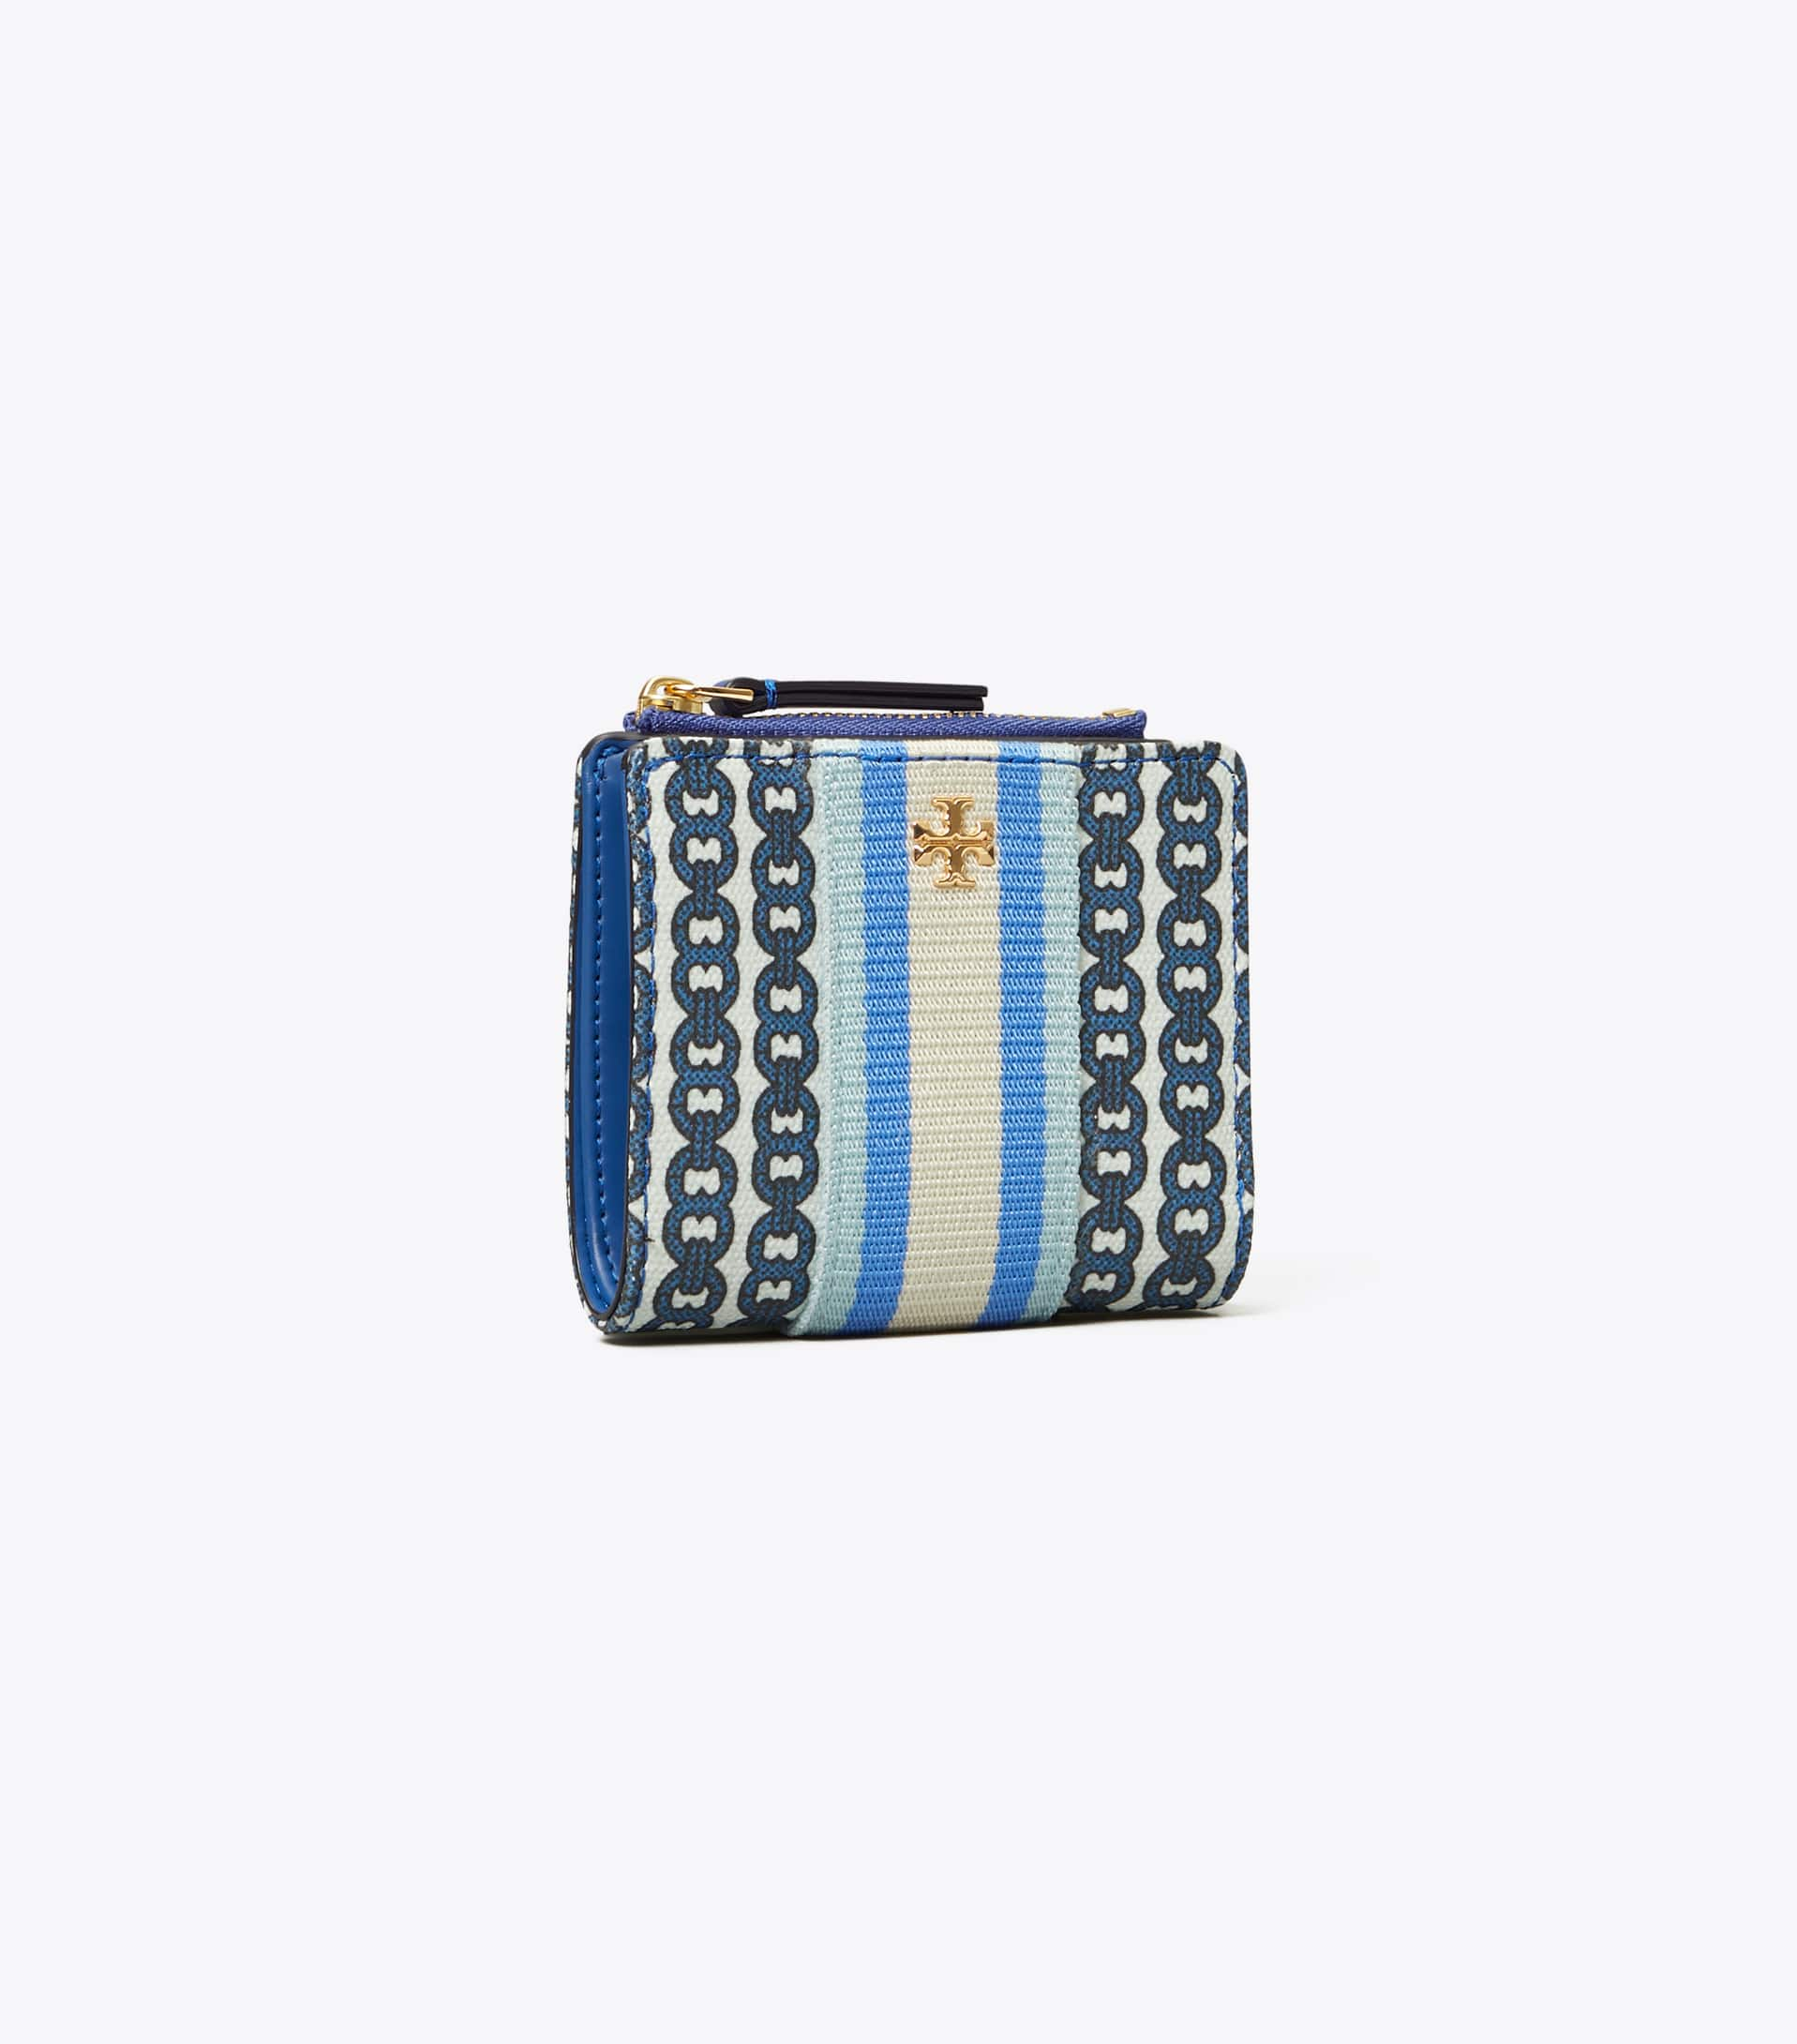 Tory Burch Extra 30% Code: Miller Sandals from $97.30,  Gemini Link Mini Wallet (Bondi Blue) $55.30, Pink Visor $20.30 and Many More - Free Shipping